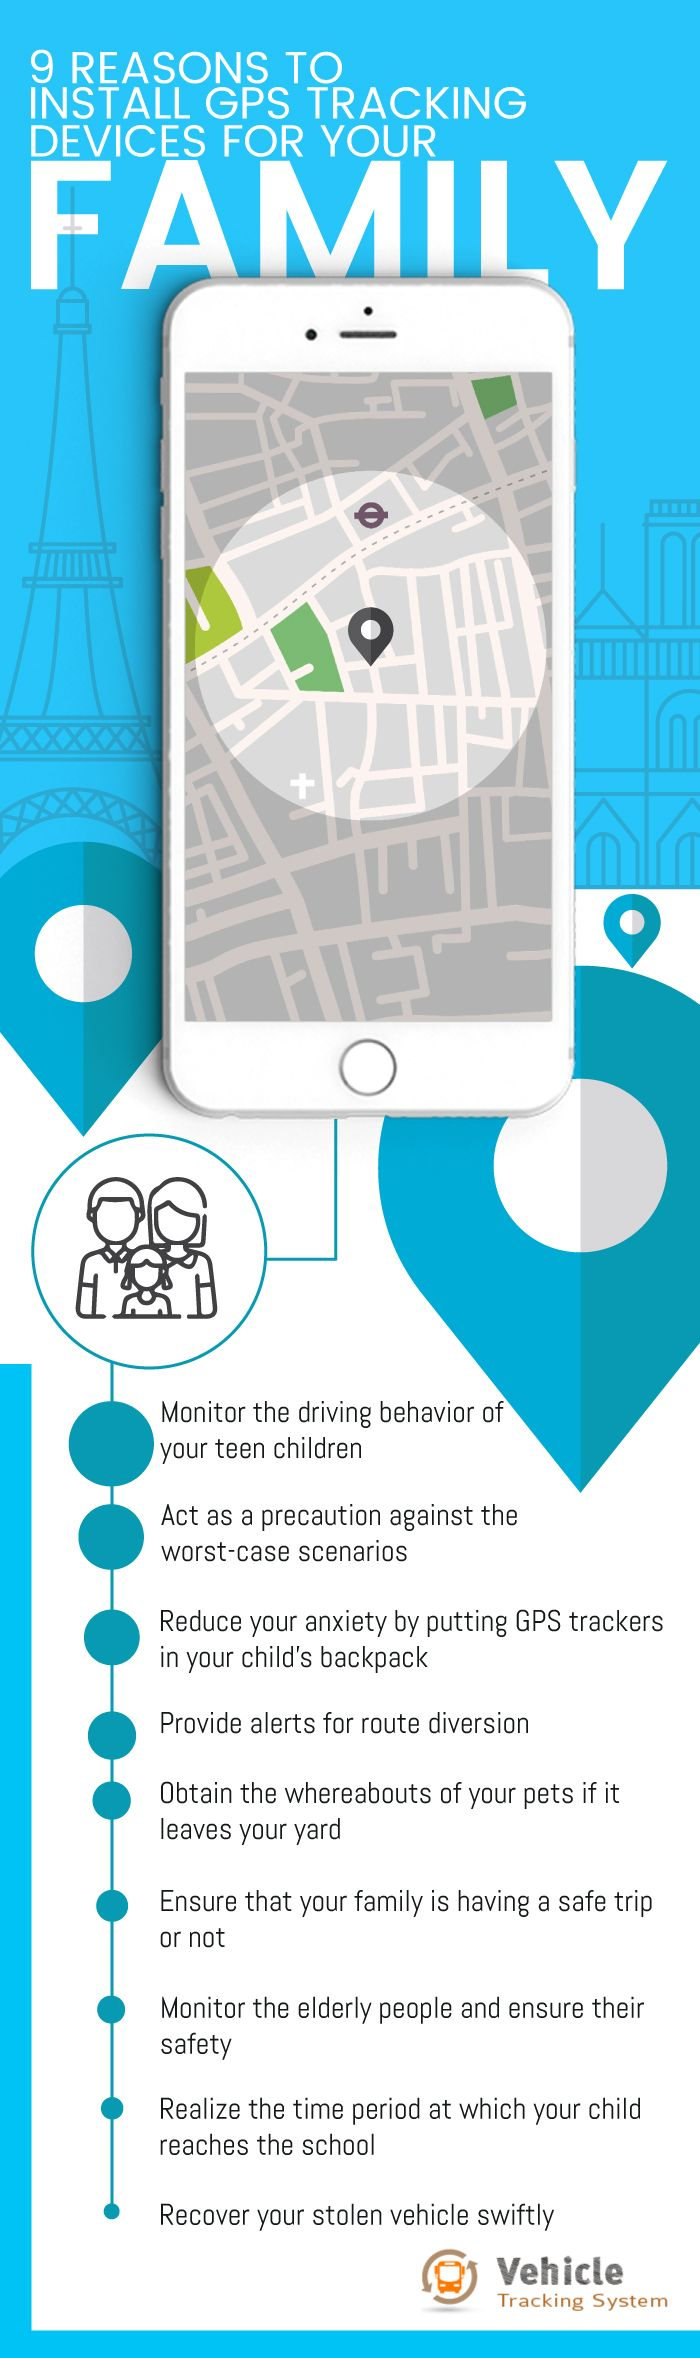 GPS tracking devices can prove as an asset for you and your beloved family.